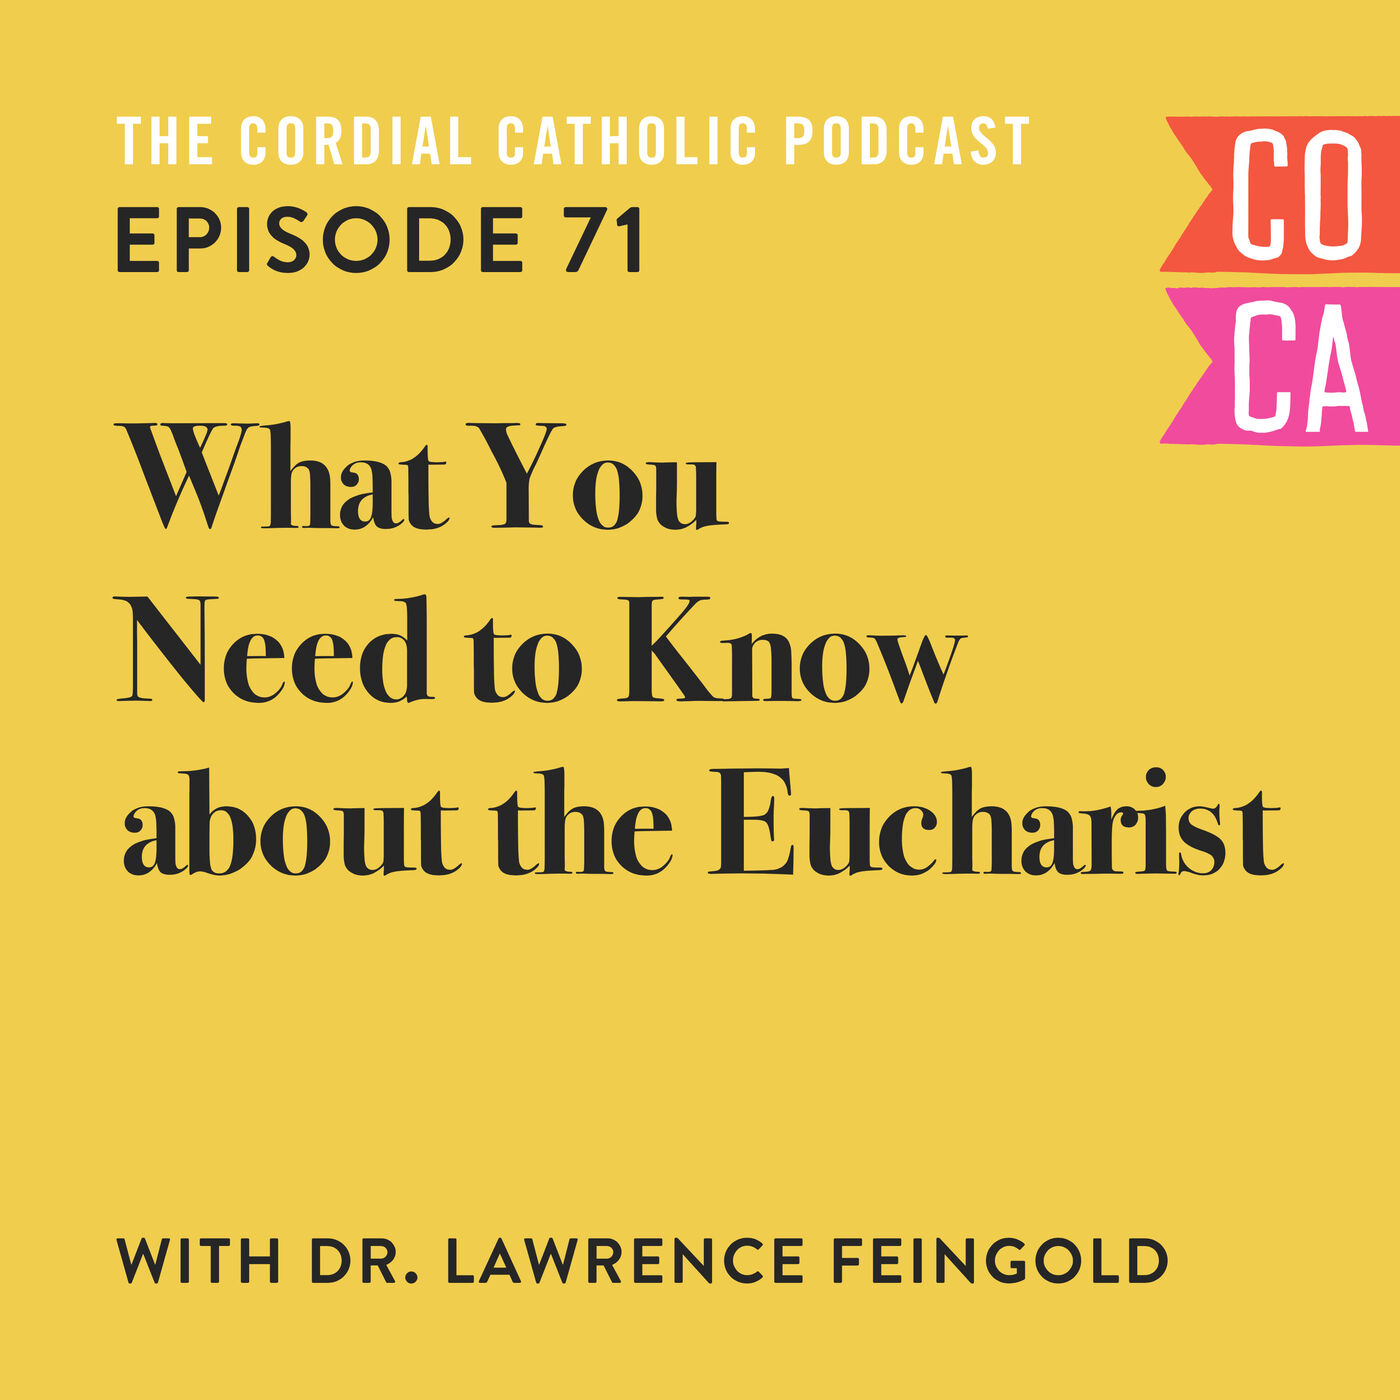 071: What You Need to Know about the Eucharist (w/ Dr. Lawrence Feingold)